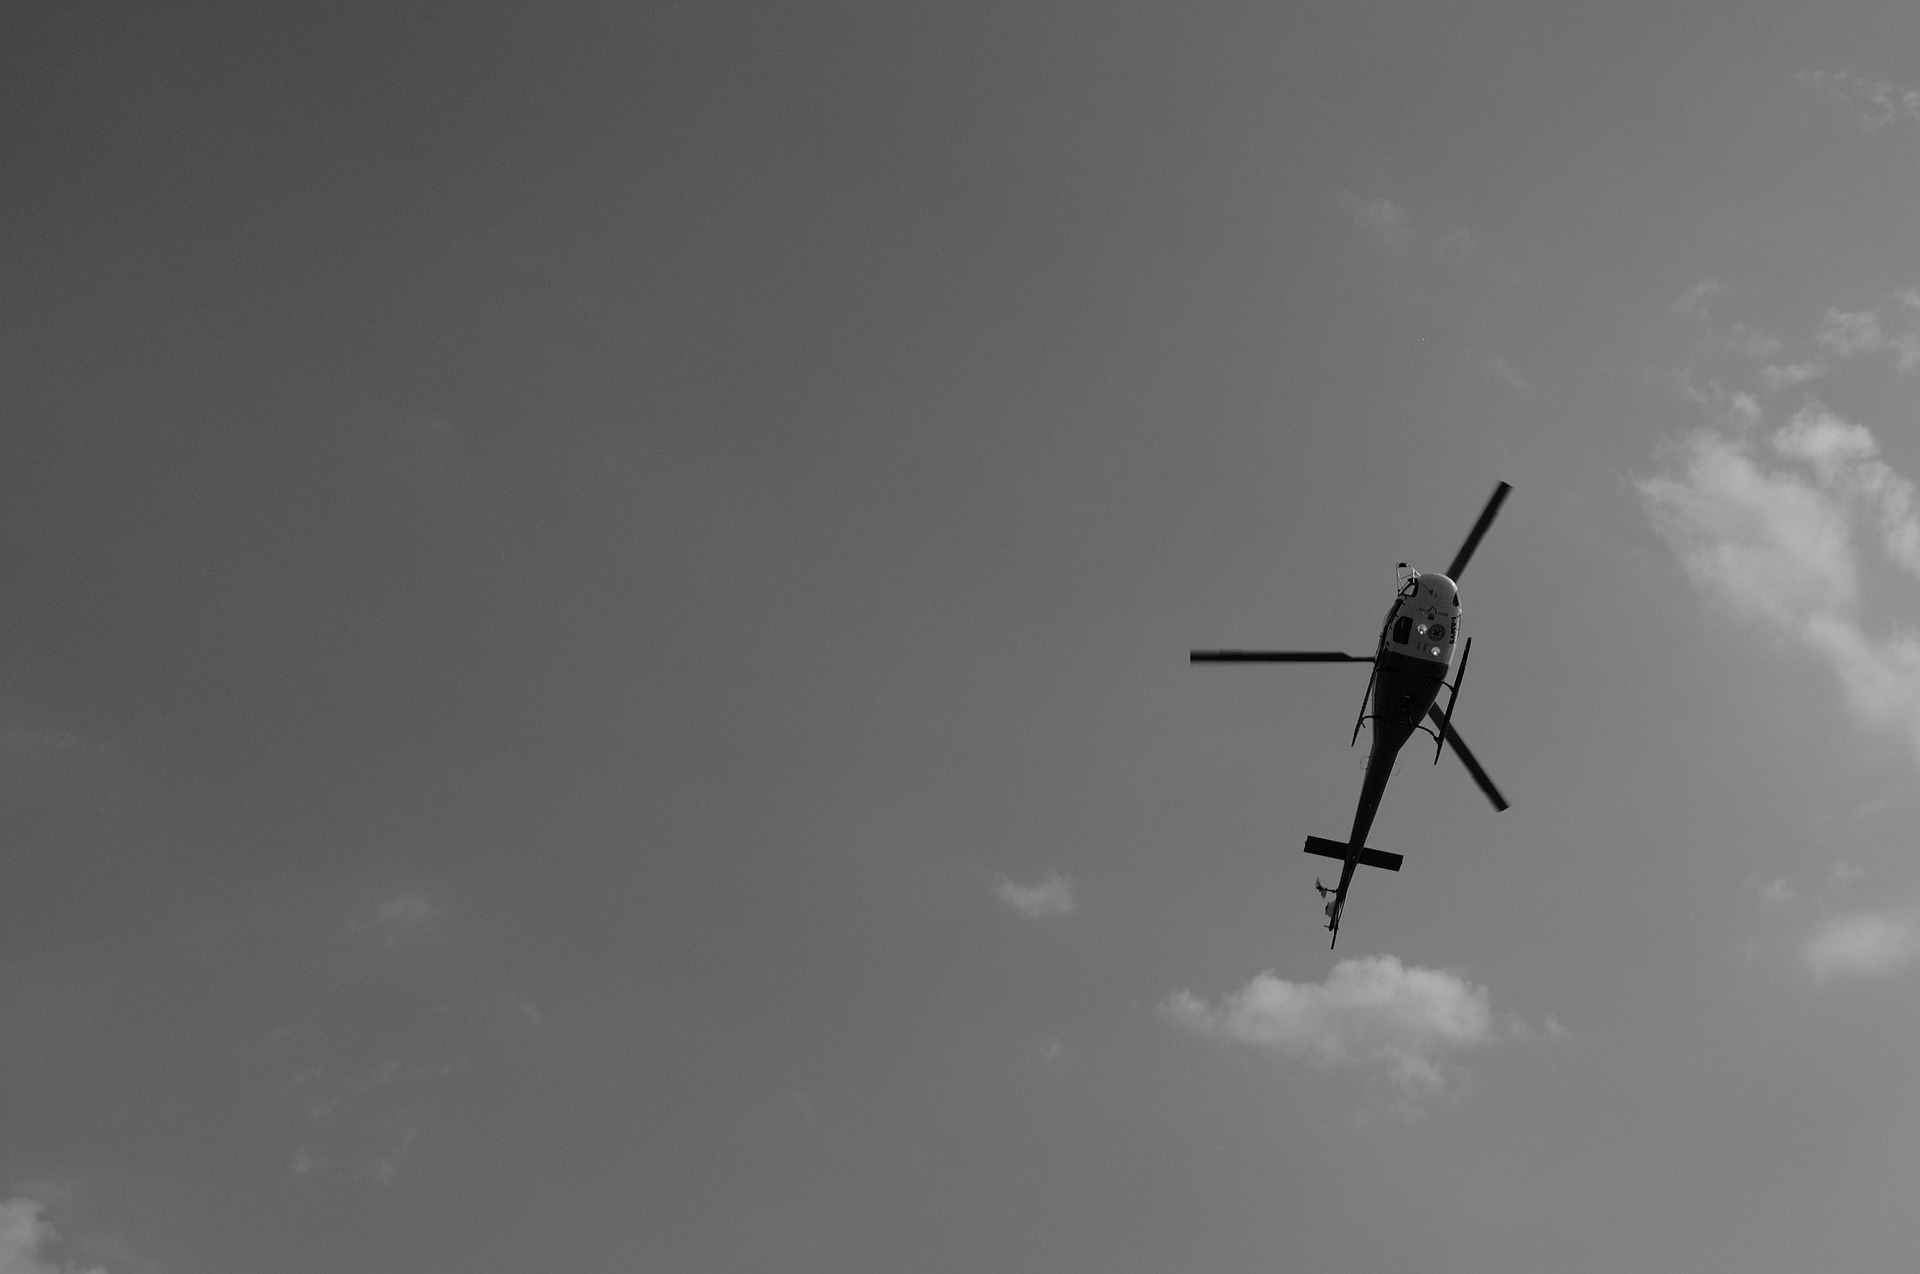 Helicopter In Air Background IMage